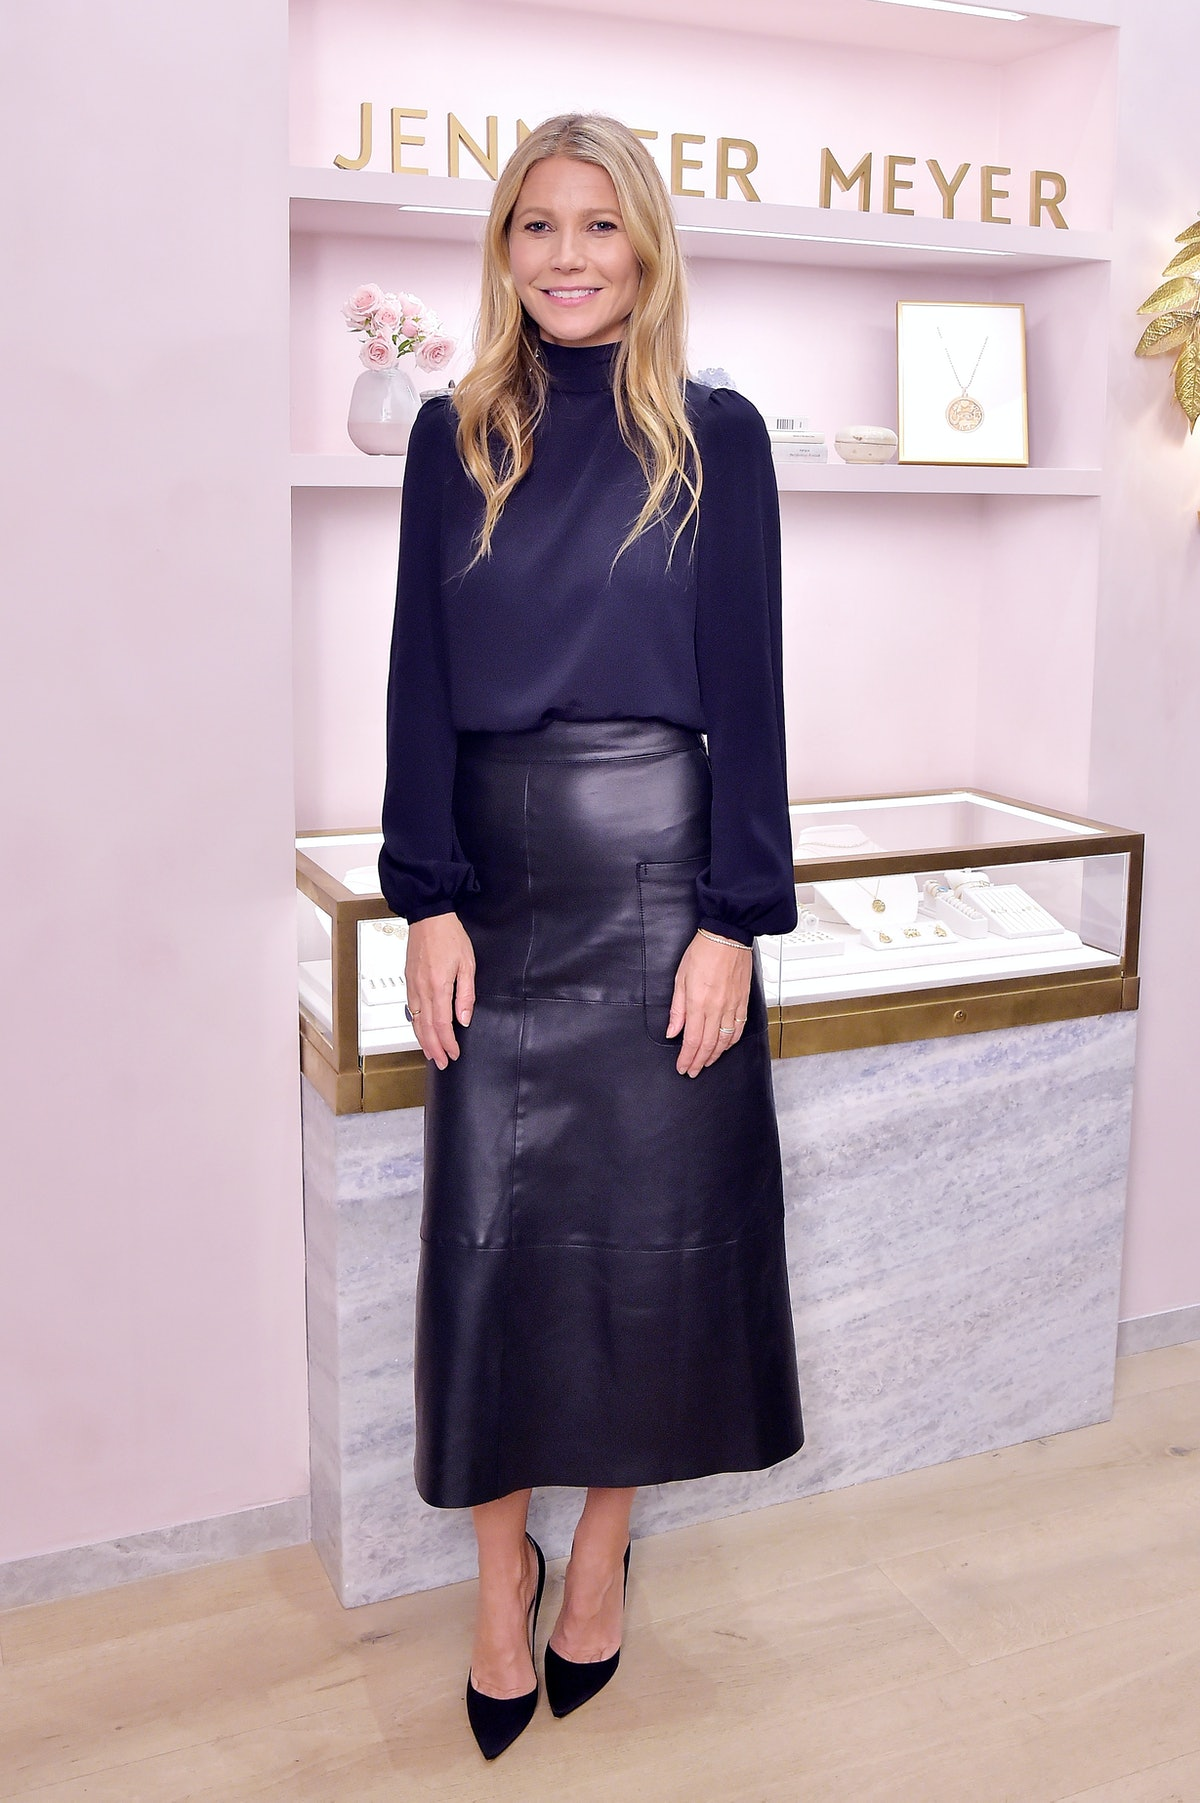 Jennifer Meyer Celebrates First Store Opening in Palisades Village At The Draycott With Gwyneth Paltrow And Rick Caruso